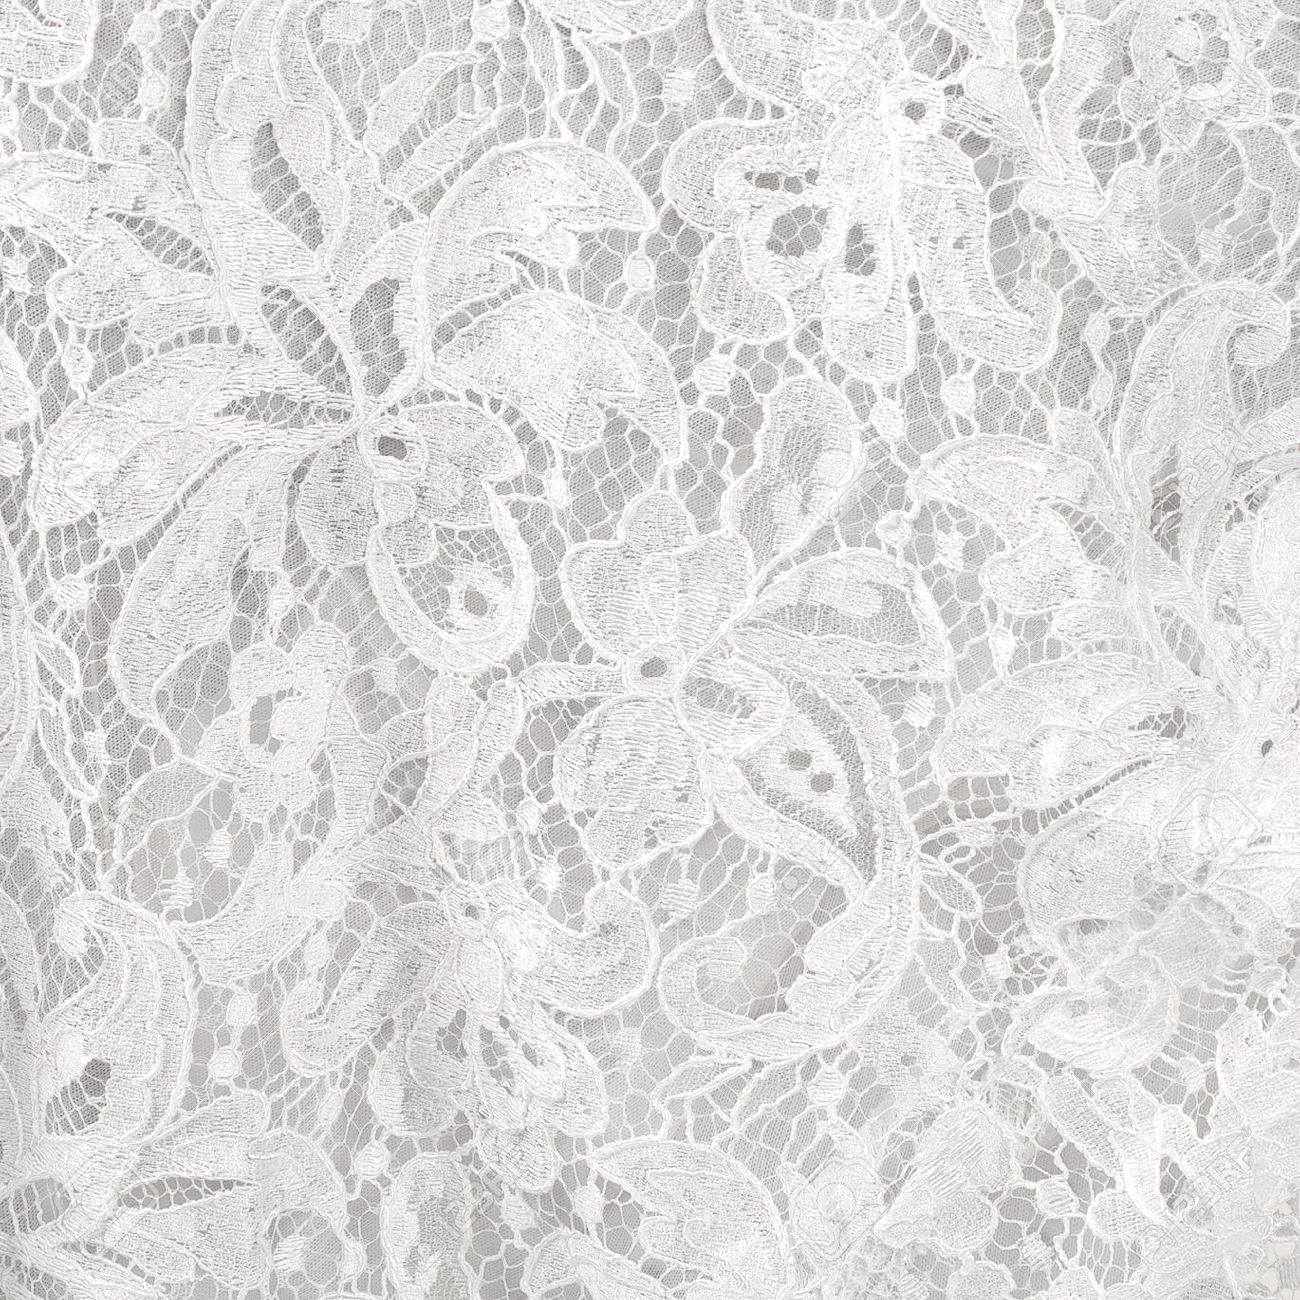 Wedding White Lace Background Stock Photo, Picture And Royalty